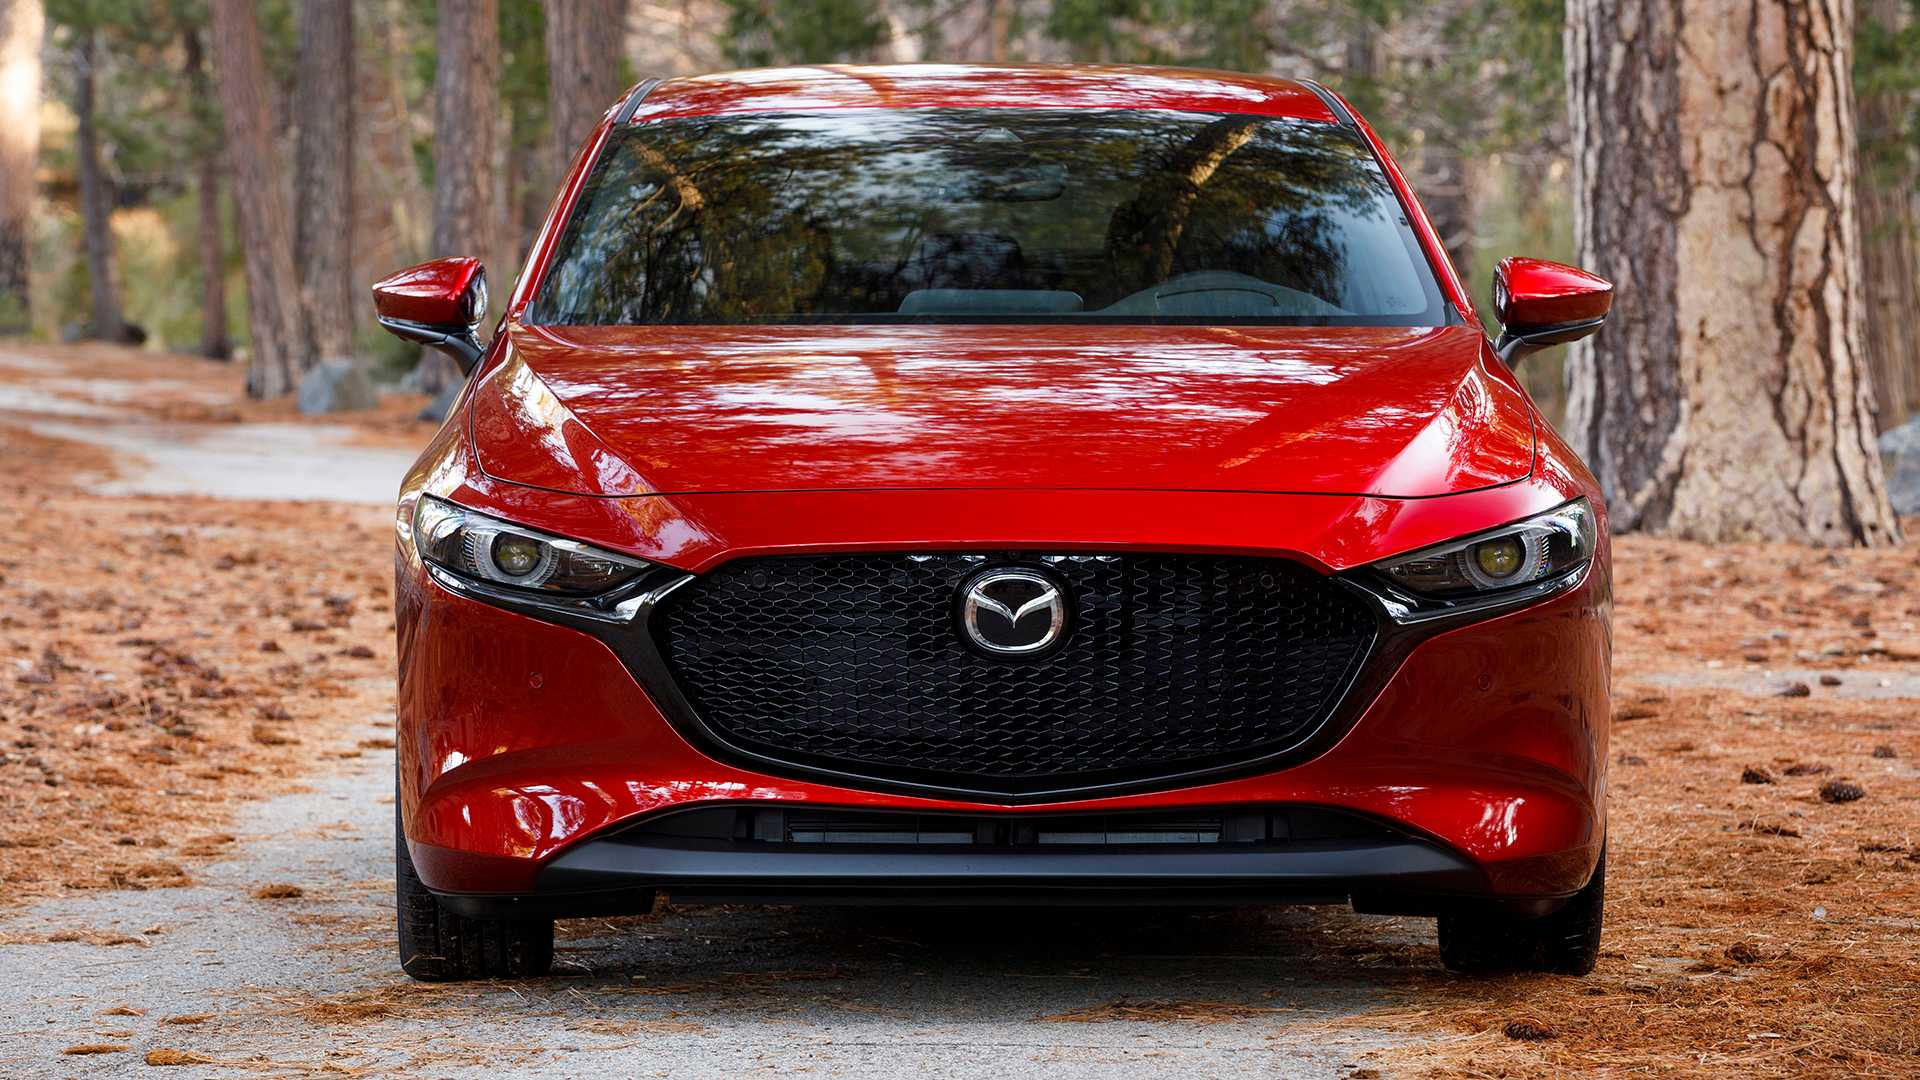 2019 Mazda 3 Cutting Edge Style And Future Technologies Youtube